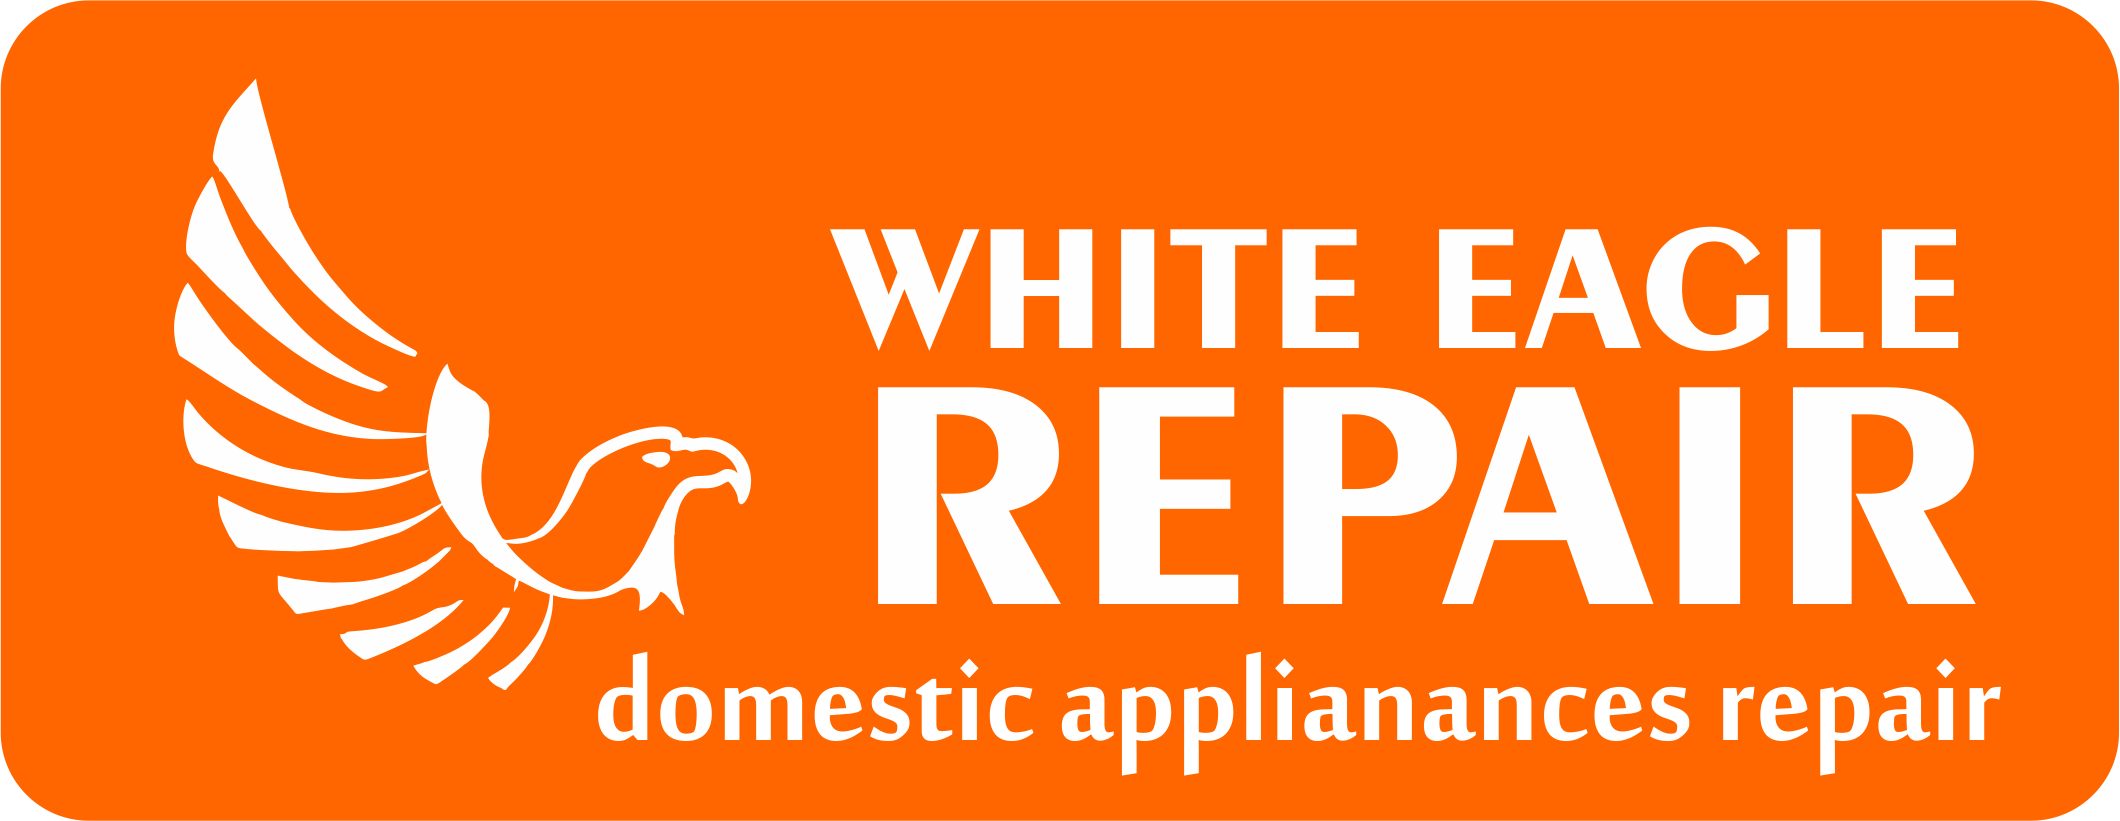 White Eagle Repair | Domestic appliances repair